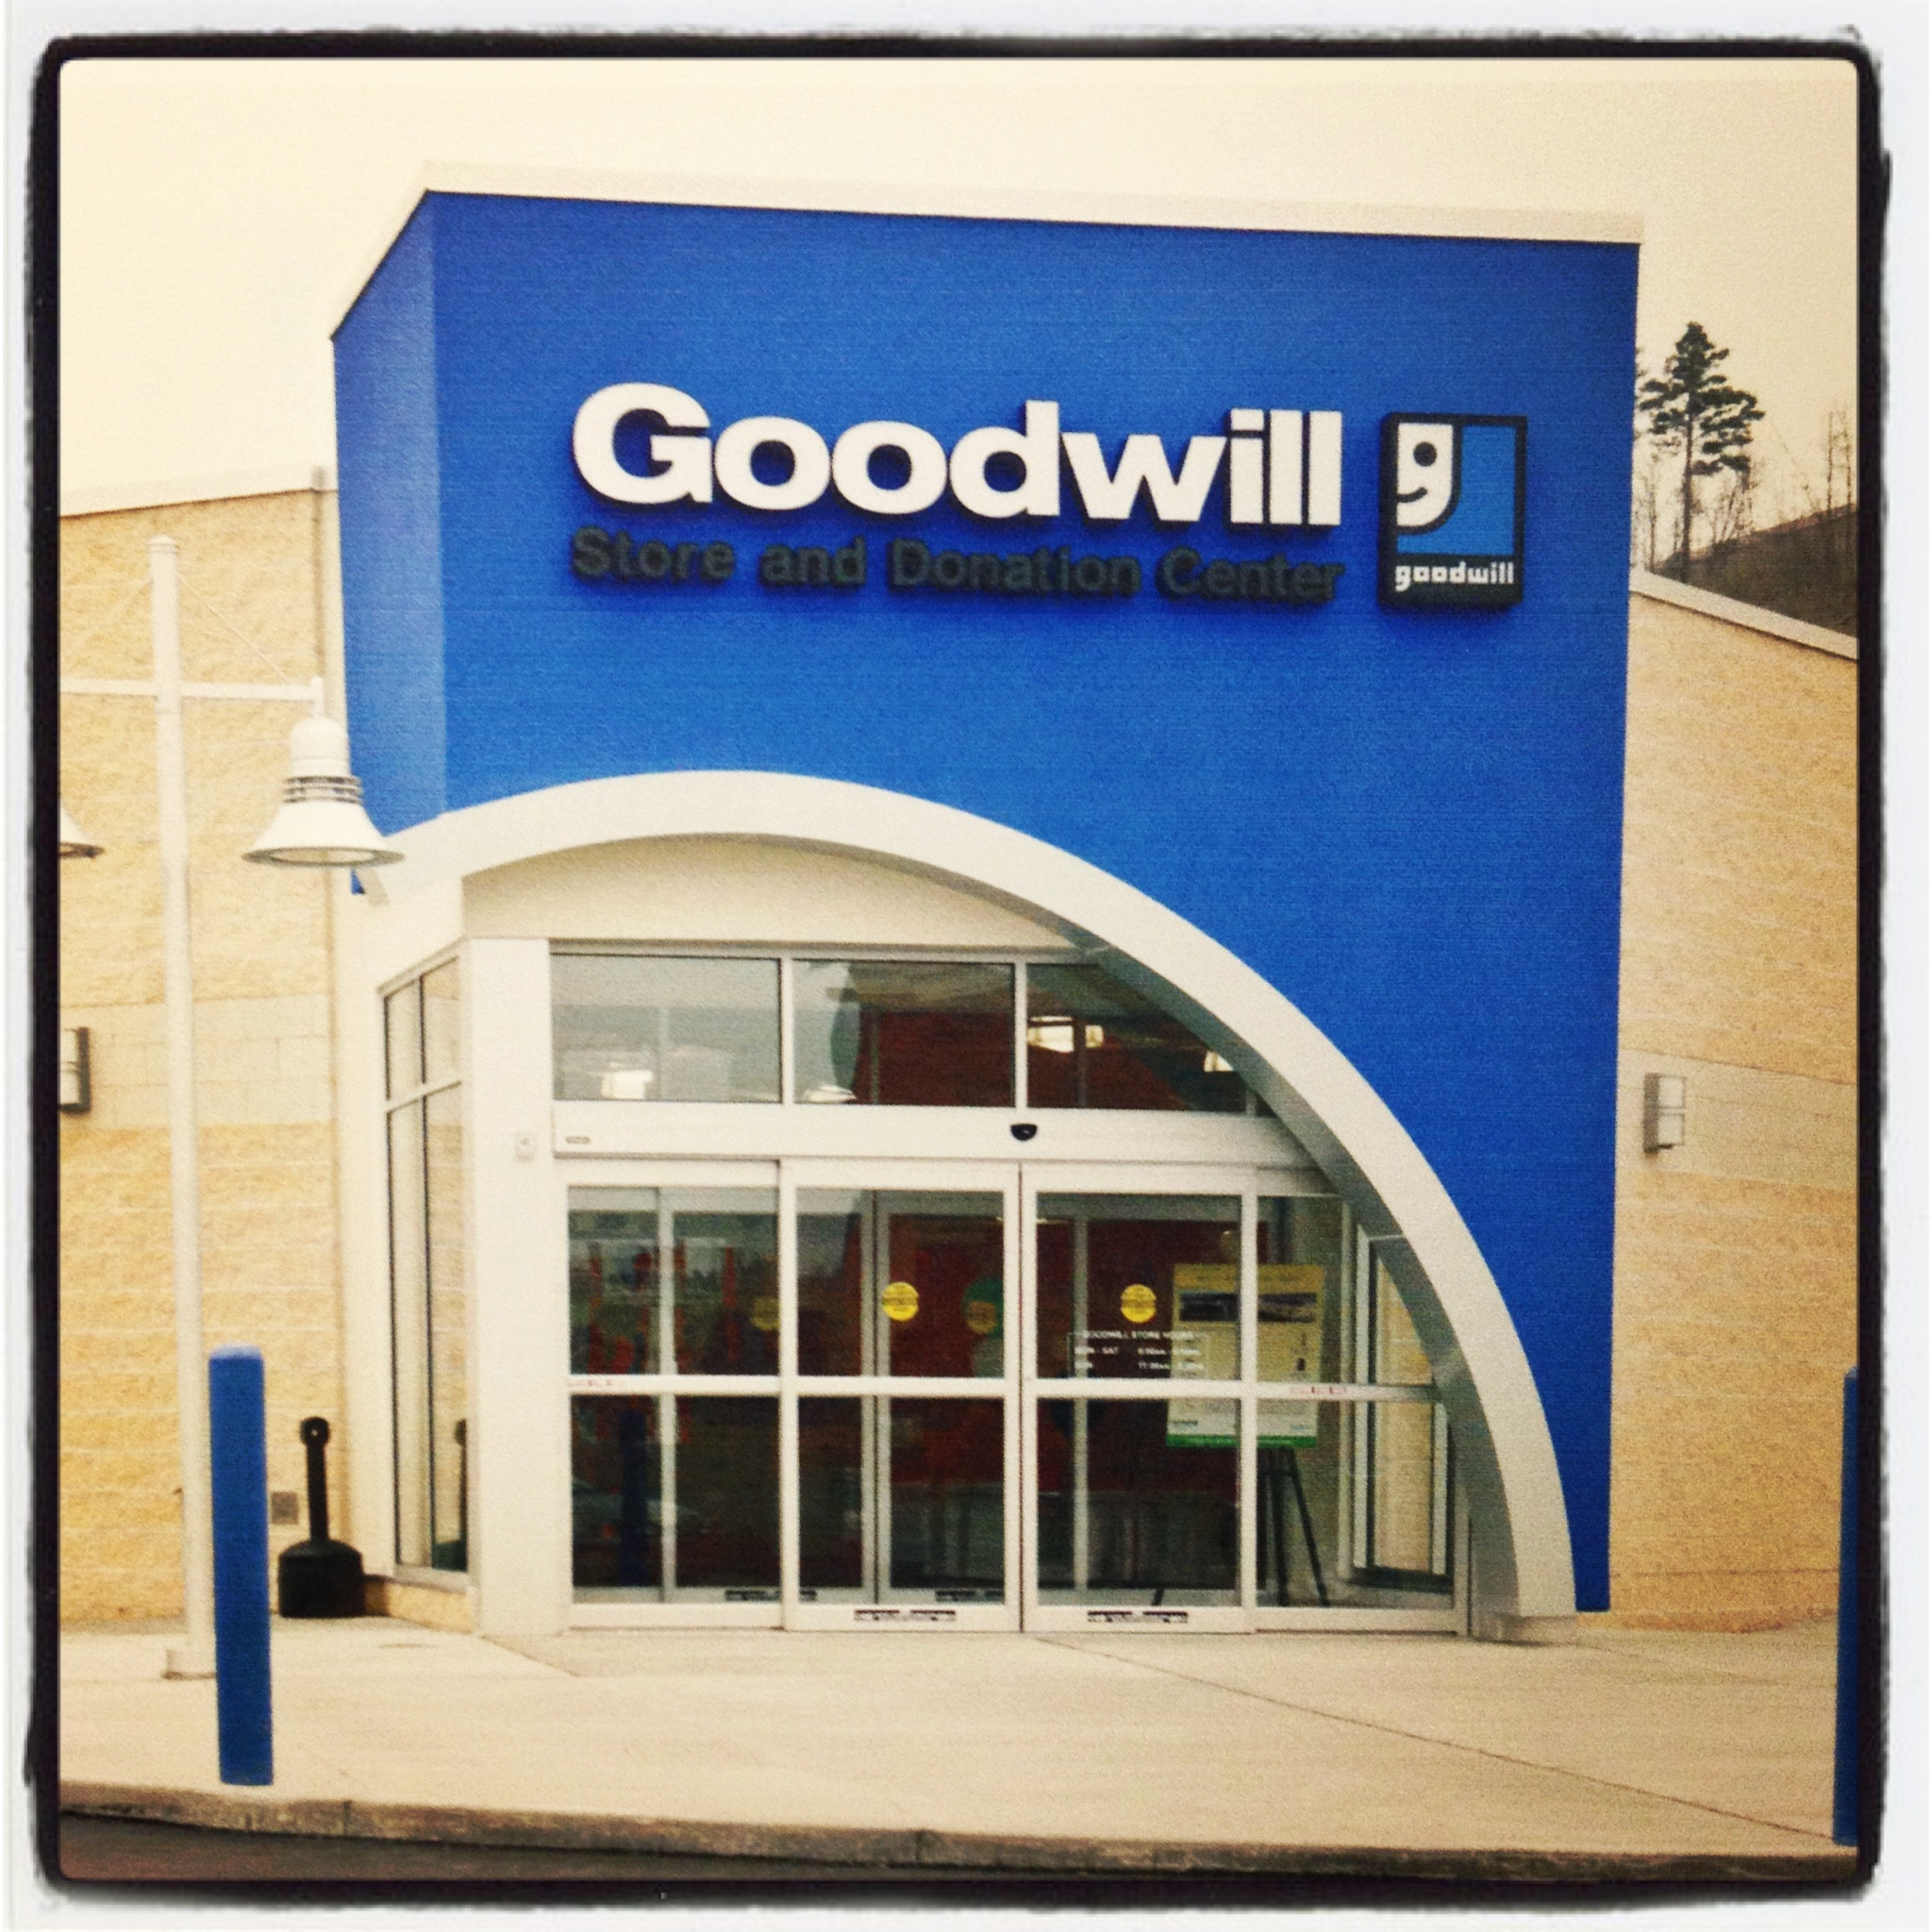 Download Goodwill Job Application Form | Fillable Adobe ... Goodwill